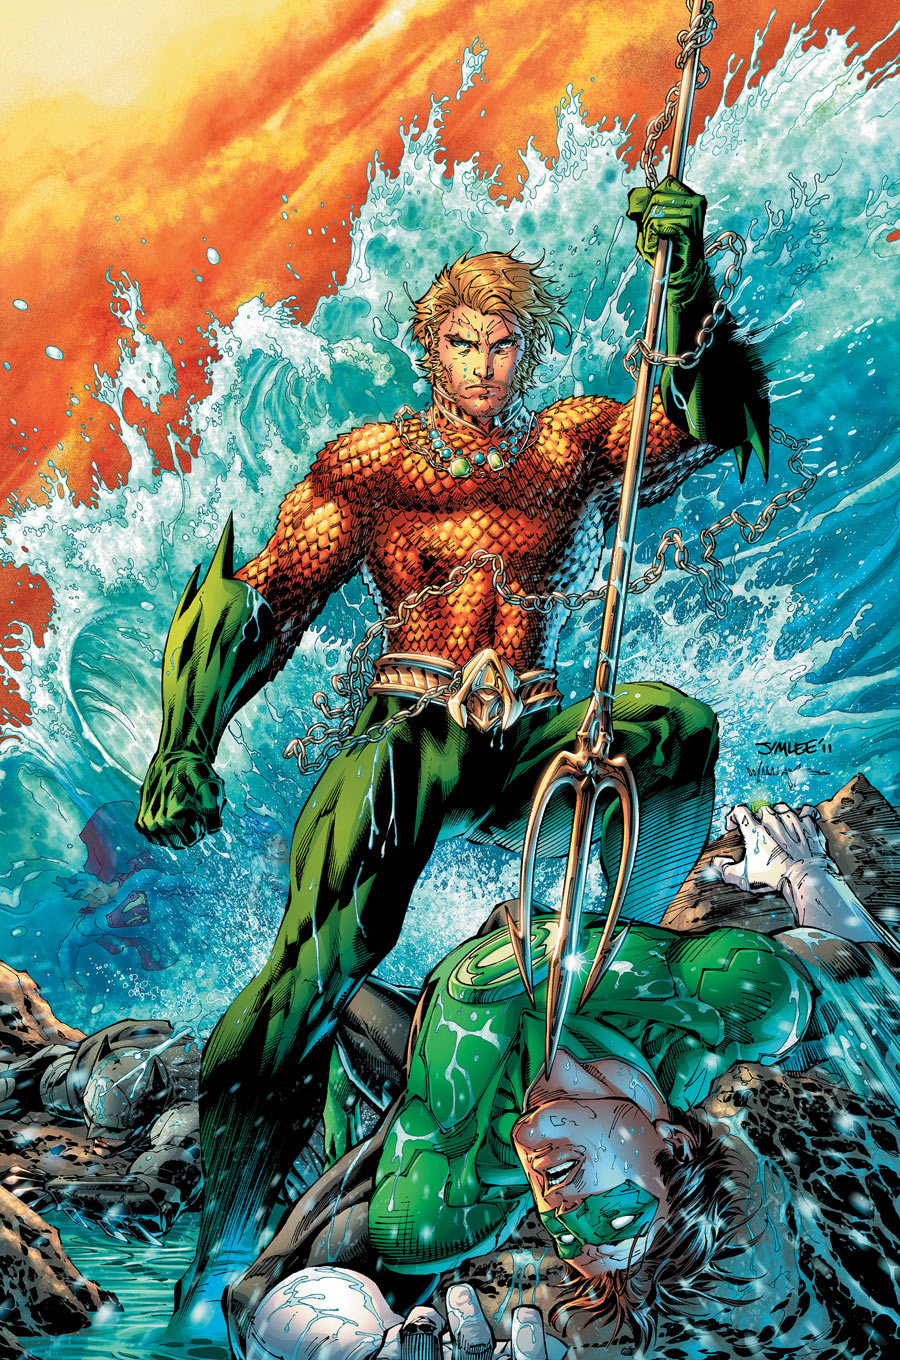 http://www.fightersgeneration.com/nx5/injustice/aquaman-justiceleague-victory.jpg